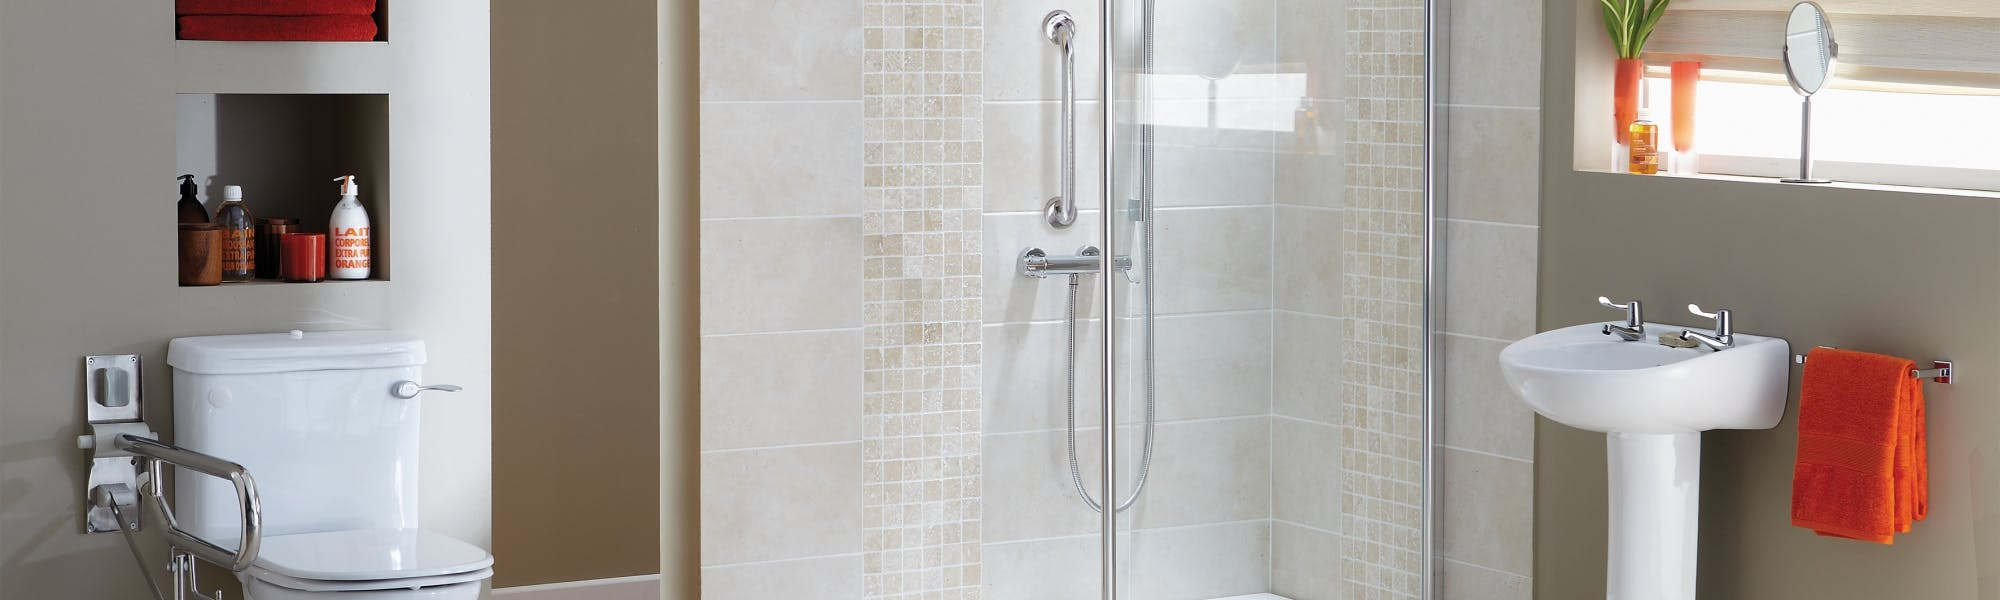 Walk-In Easy Access Showers  | Designed And Installed | More Ability